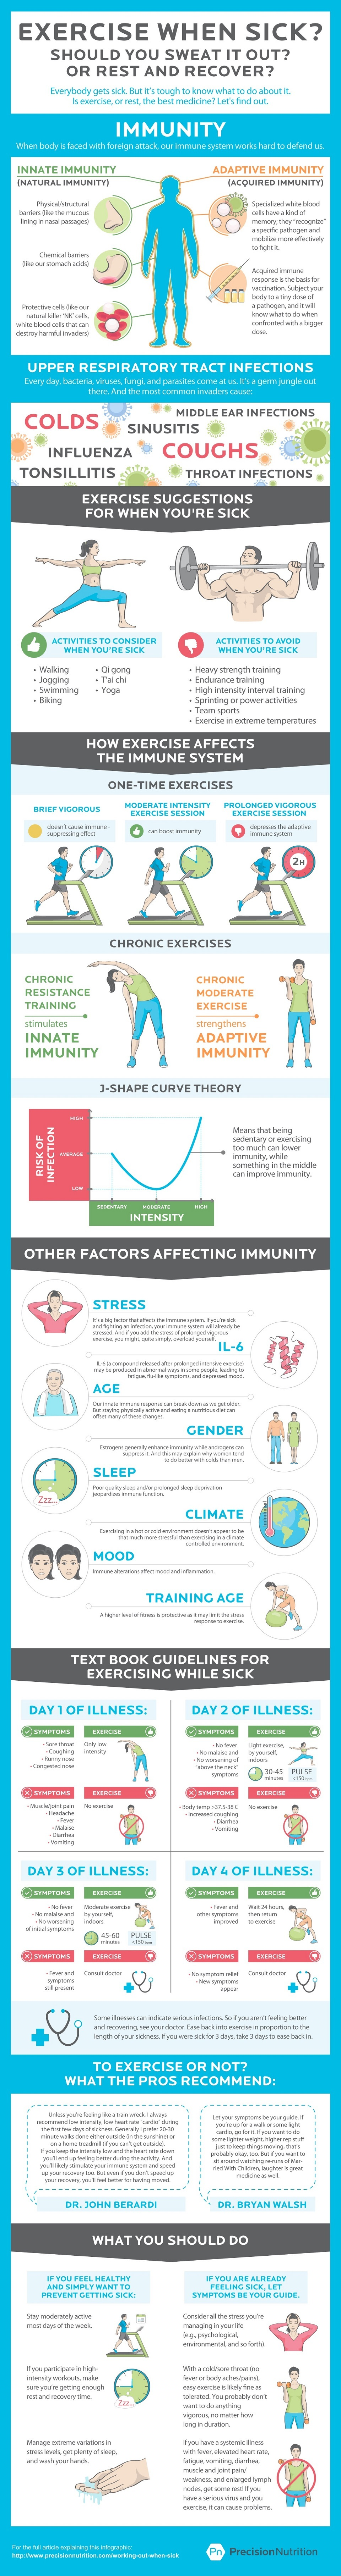 Is Exercising when Sick a Boon or a Bane to Your Health? - Infographic